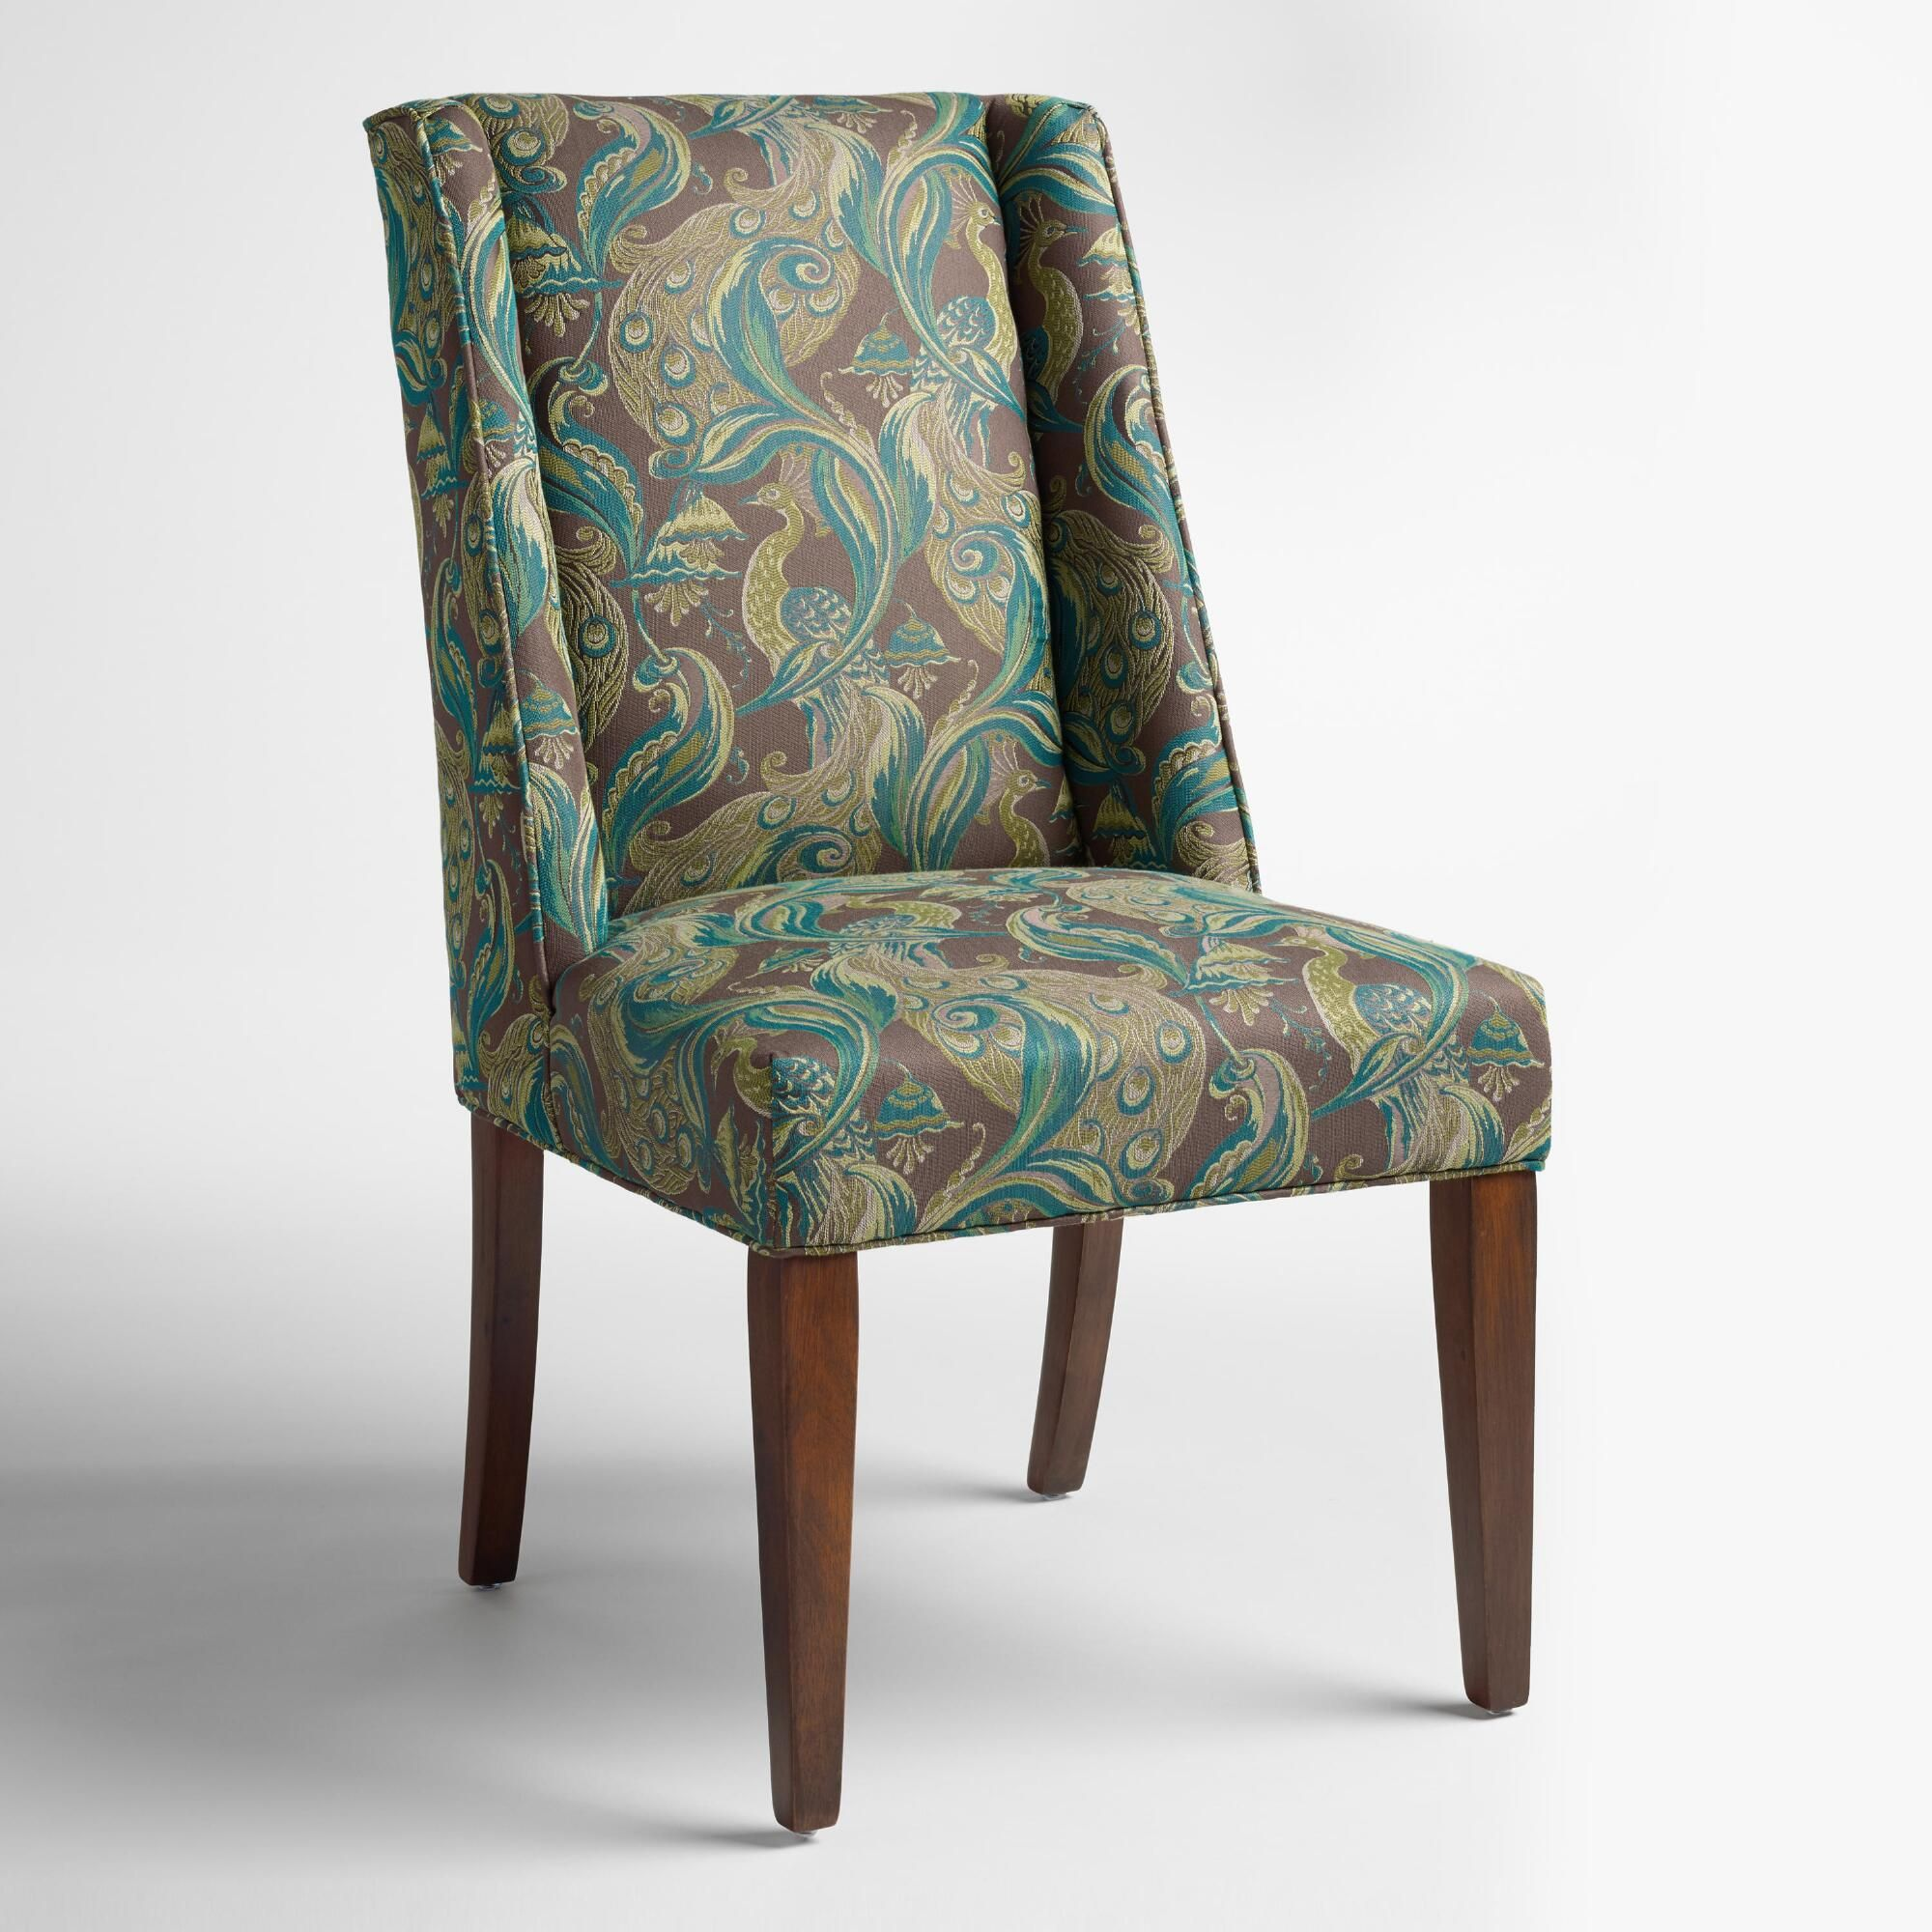 Featuring jacquard fabric upholstery with a peacock motif and subtle